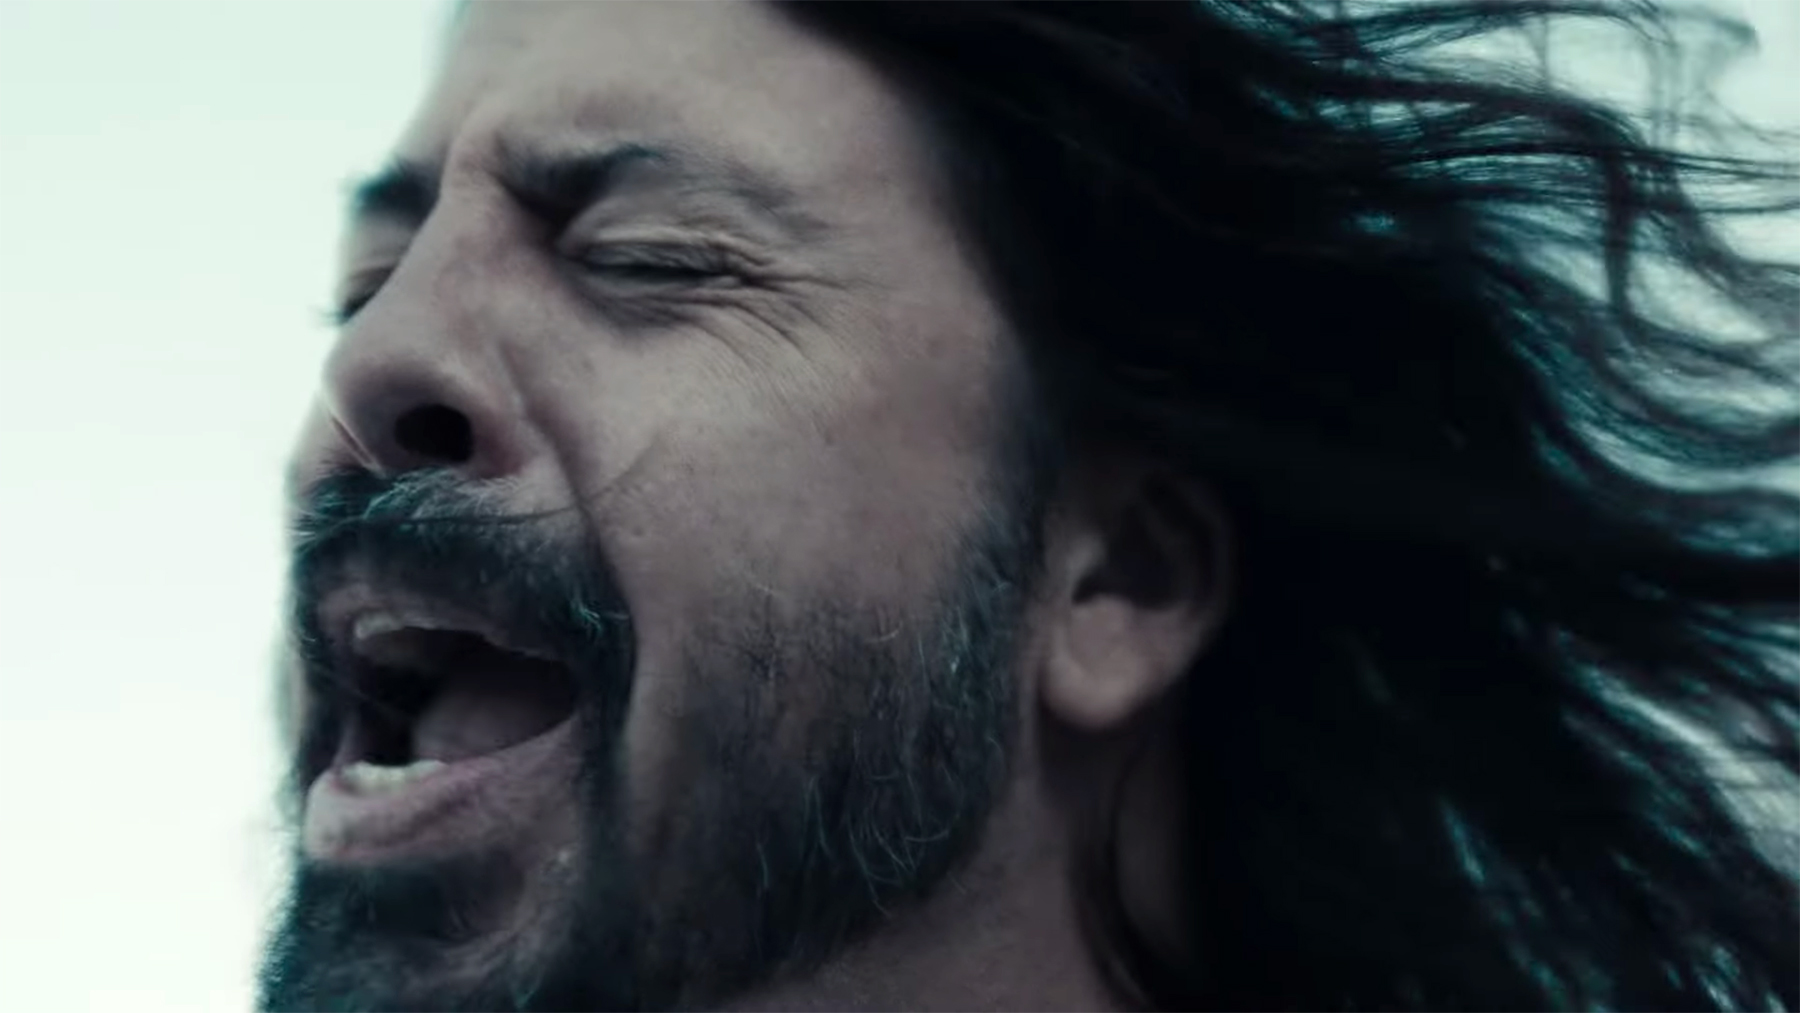 Foo Fighters Call Upon the Youth in 'Waiting on a War' Video - Rolling Stone